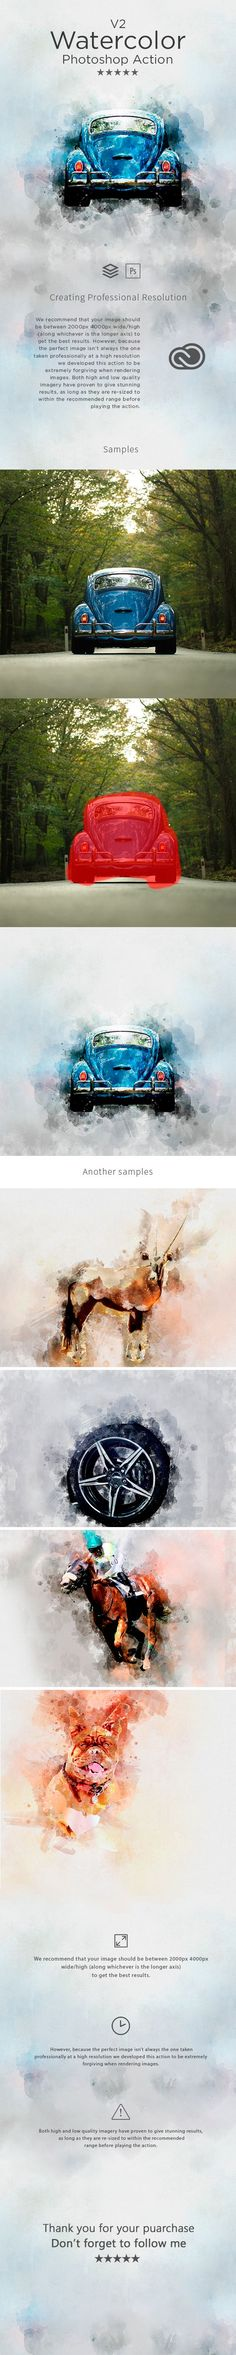 Watercolor V.2 Photoshop Action — Photoshop ATN #photoshop #water color • Available here ➝ https://graphicriver.net/item/watercolor-v2-photoshop-action/20682494?ref=pxcr